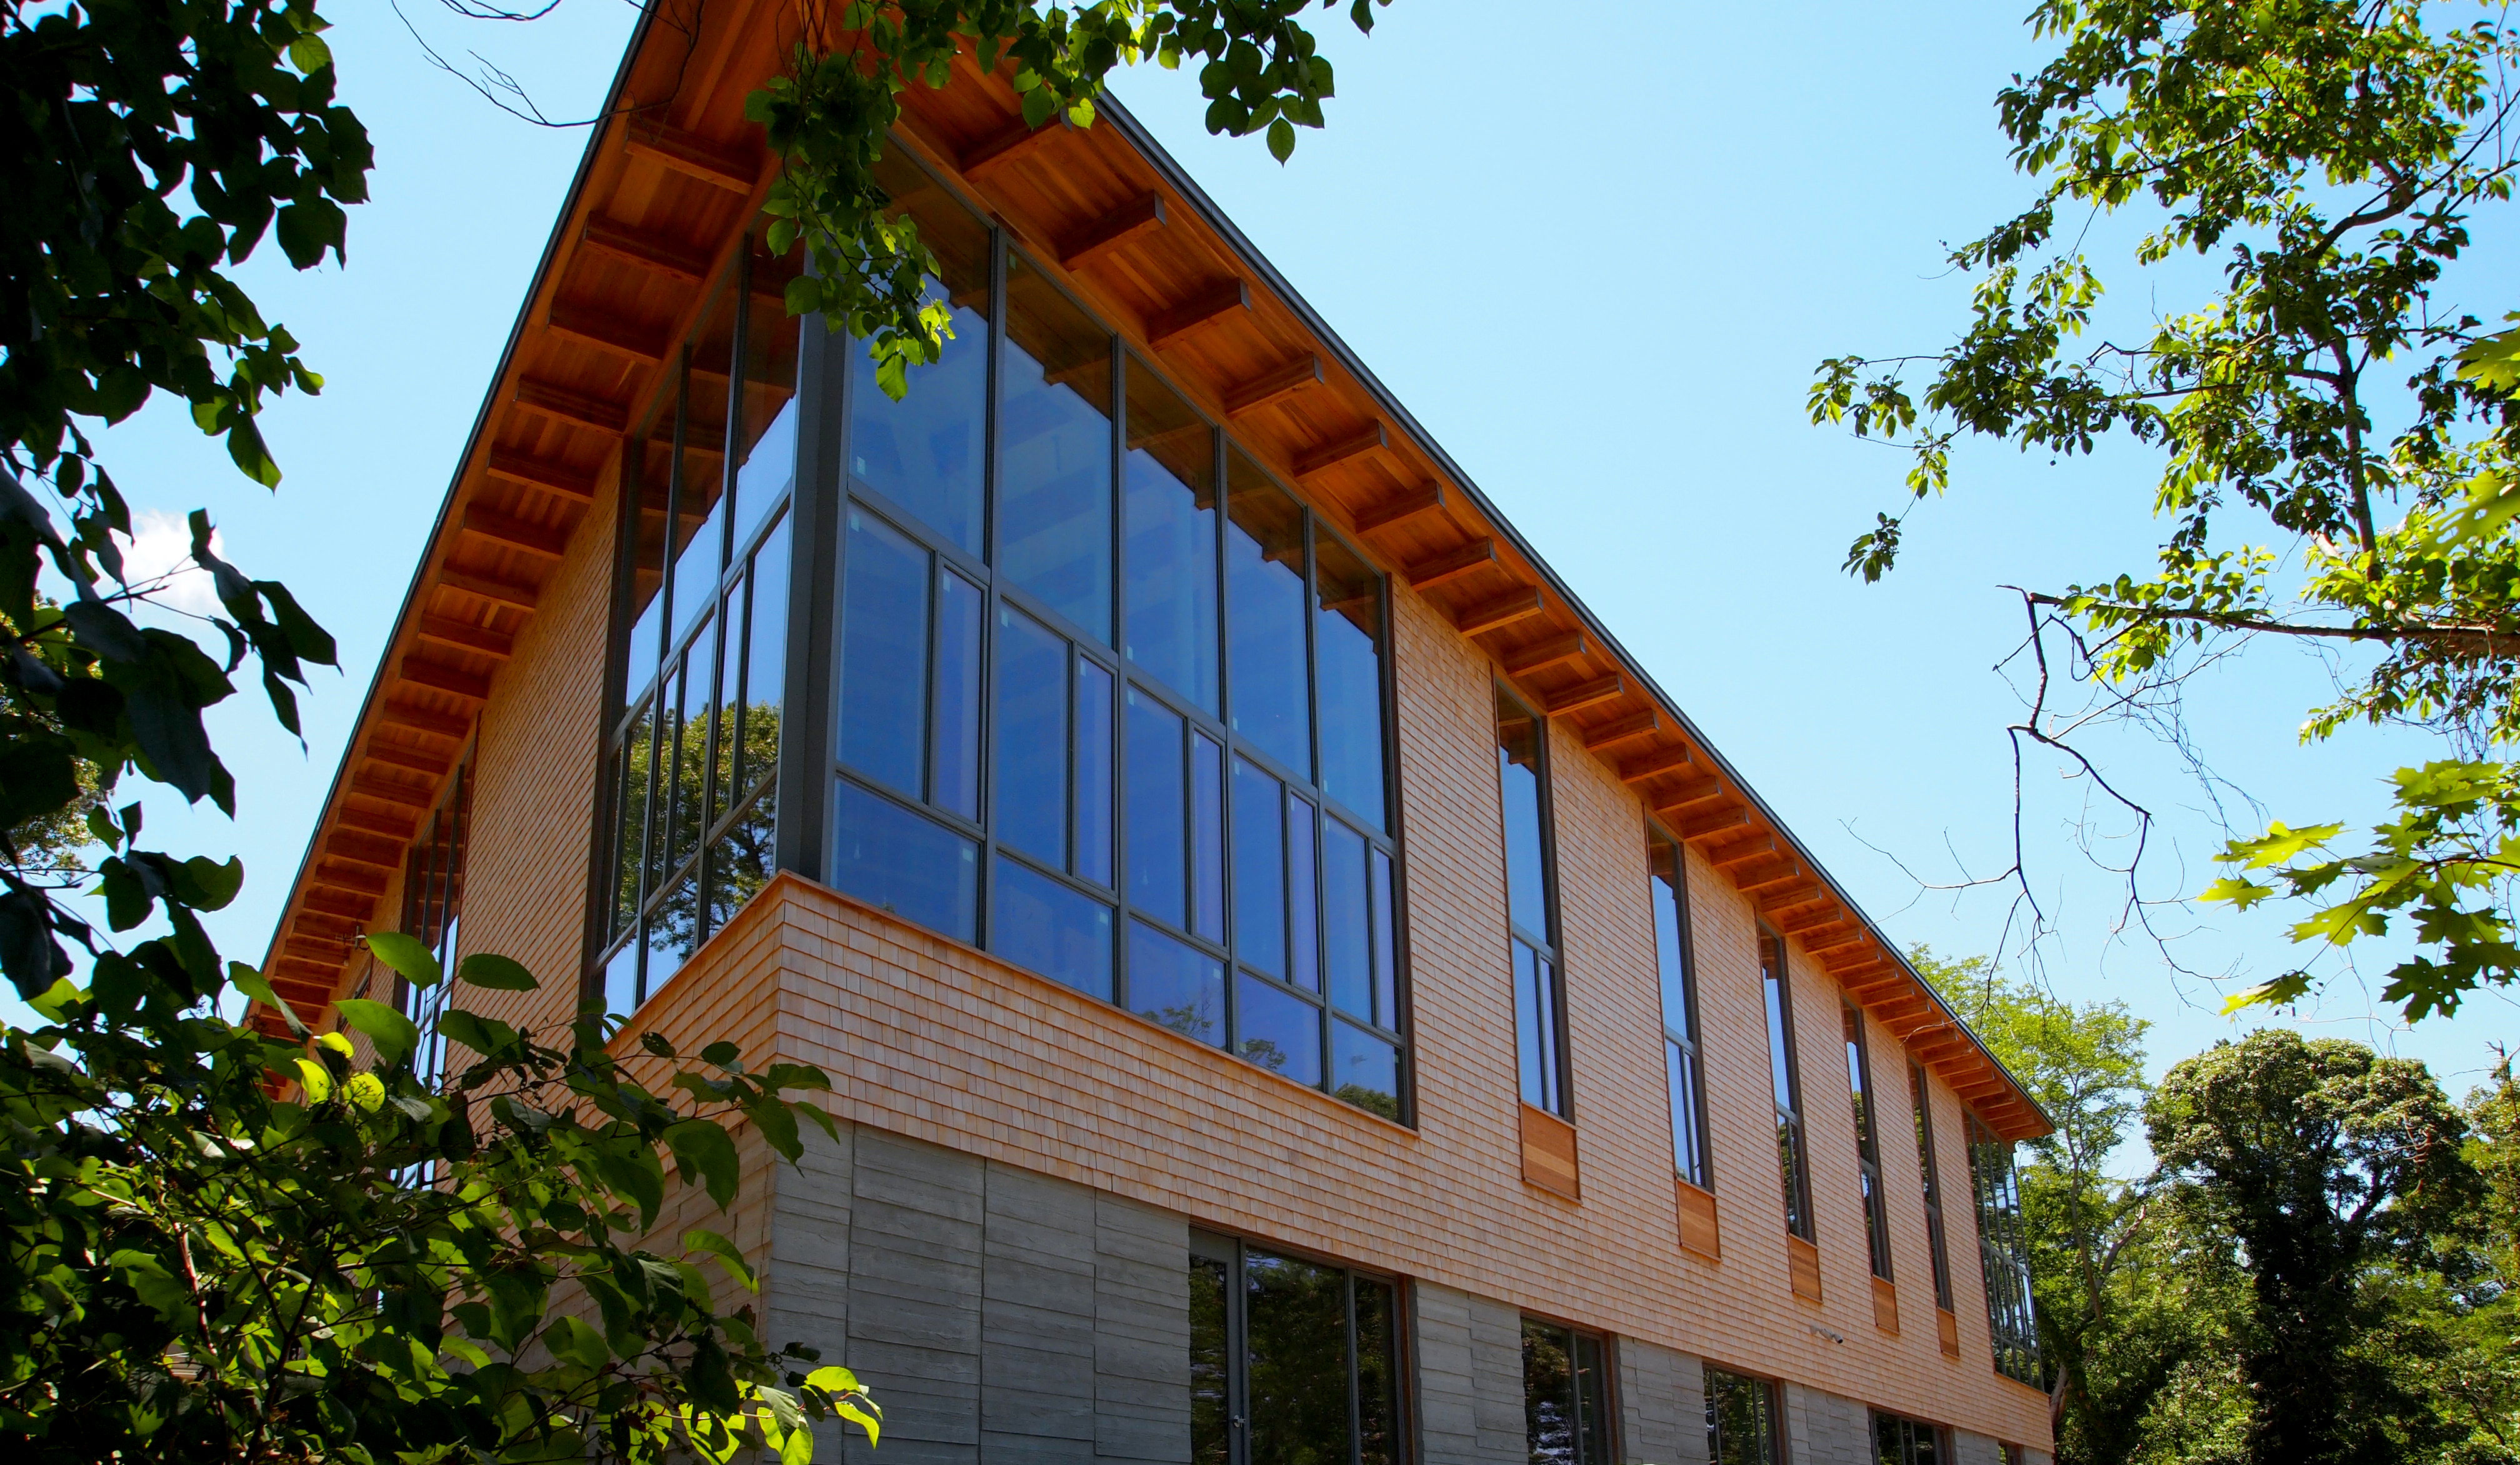 LEED Gold Certified, AIA/ALA Library Building Award, Eastham, Cape Cod, Nauset, Oudens Ello Architecture